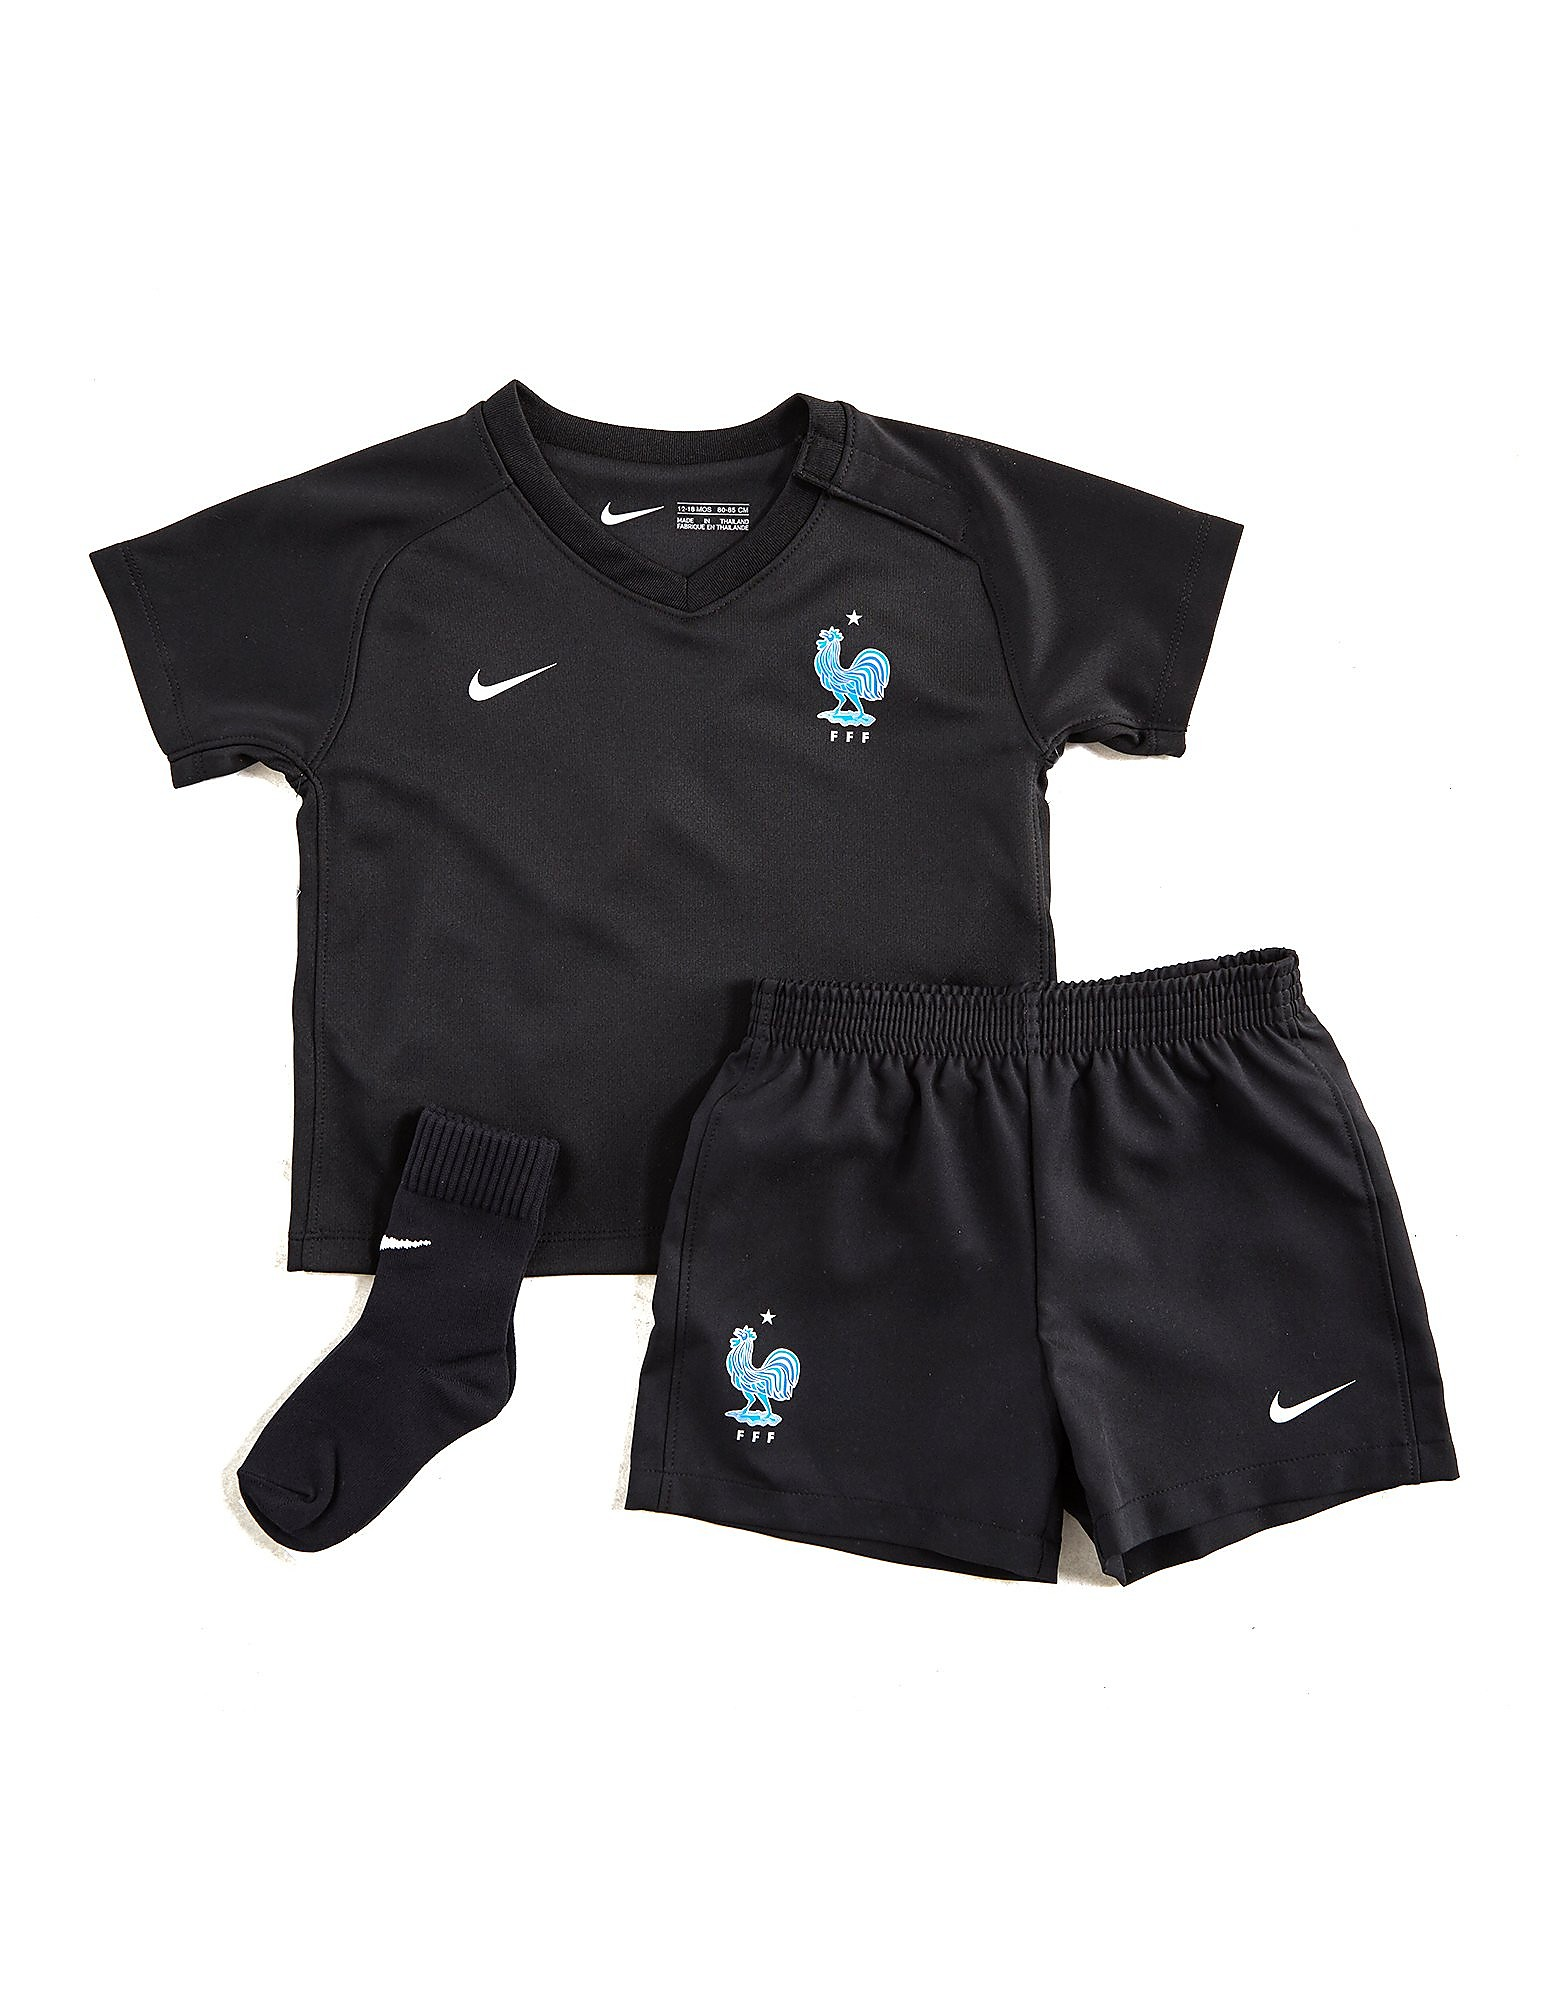 Nike FFF Stadium Infant's Shirt